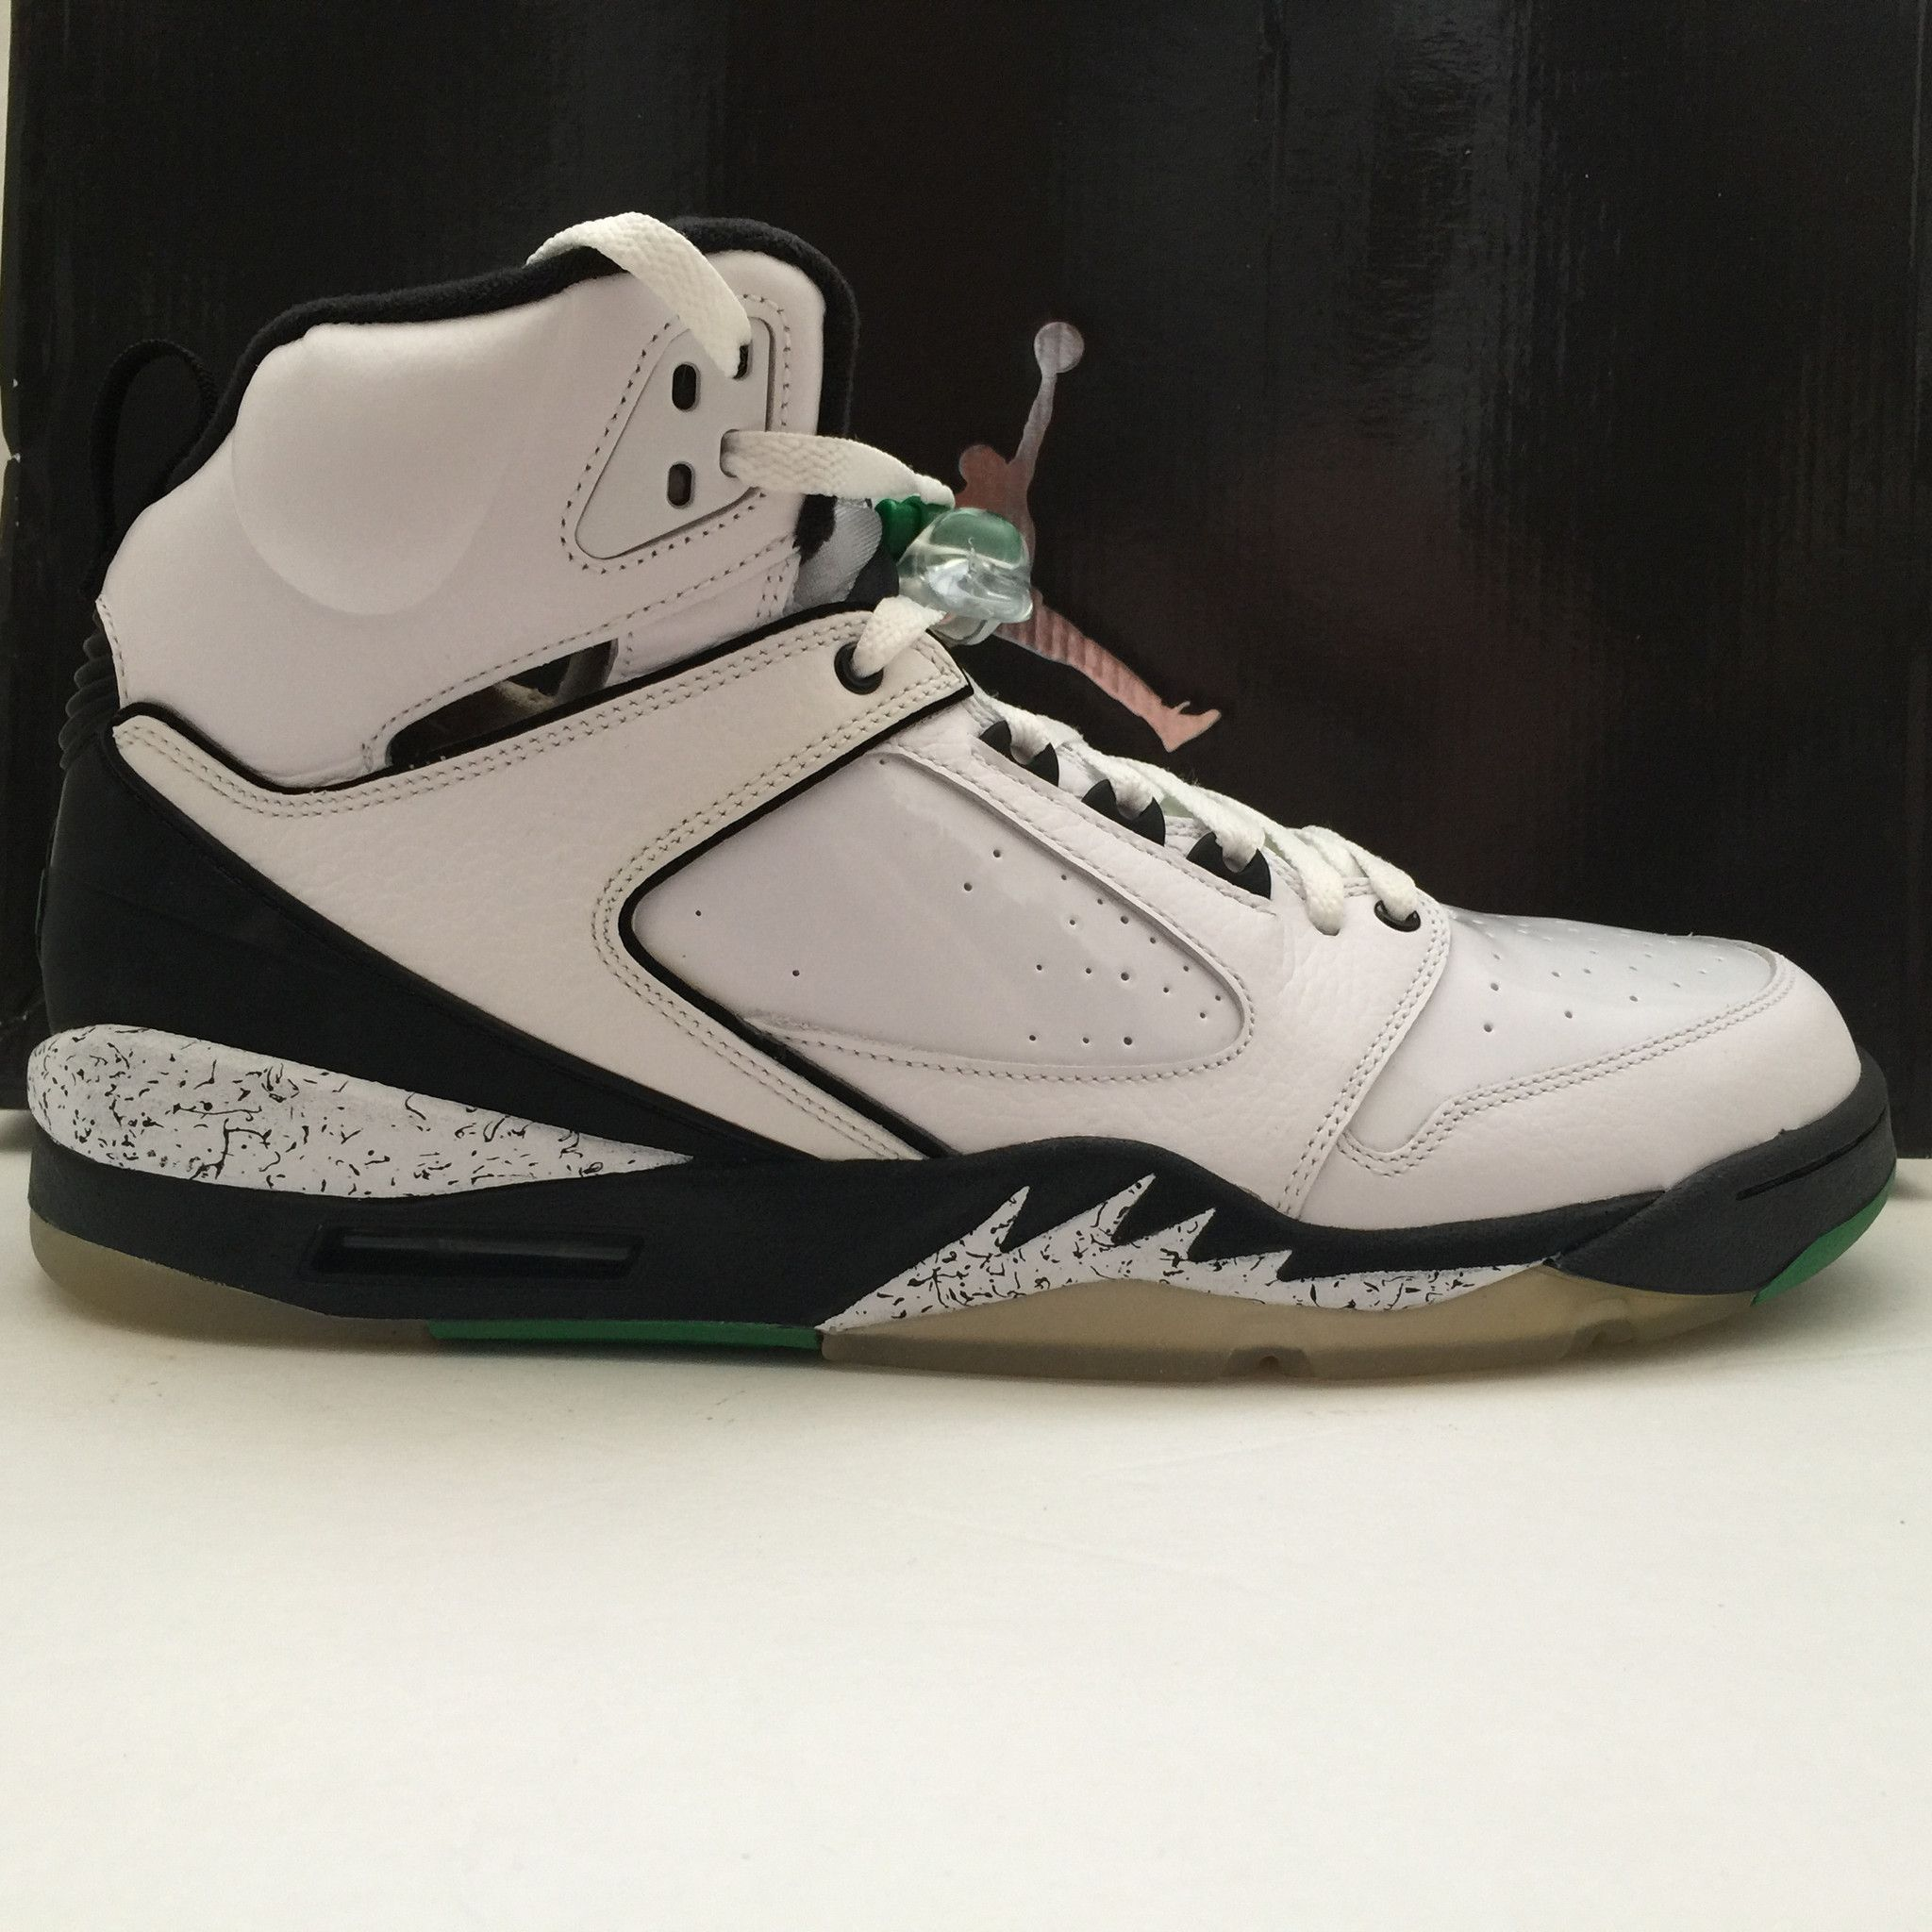 d8e357dedfcf ... where to buy name nike air jordan sixty plus size us 13 condition new  53546 eb5c1